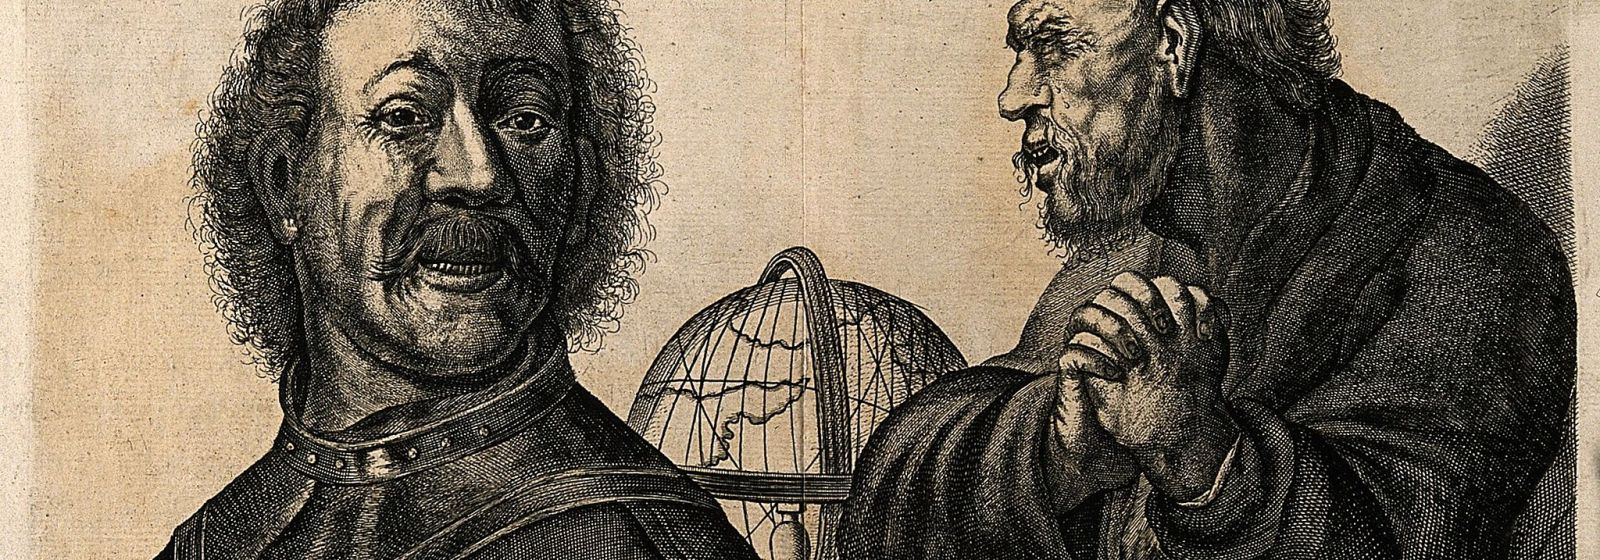 Heraclitus was wrong about innovation